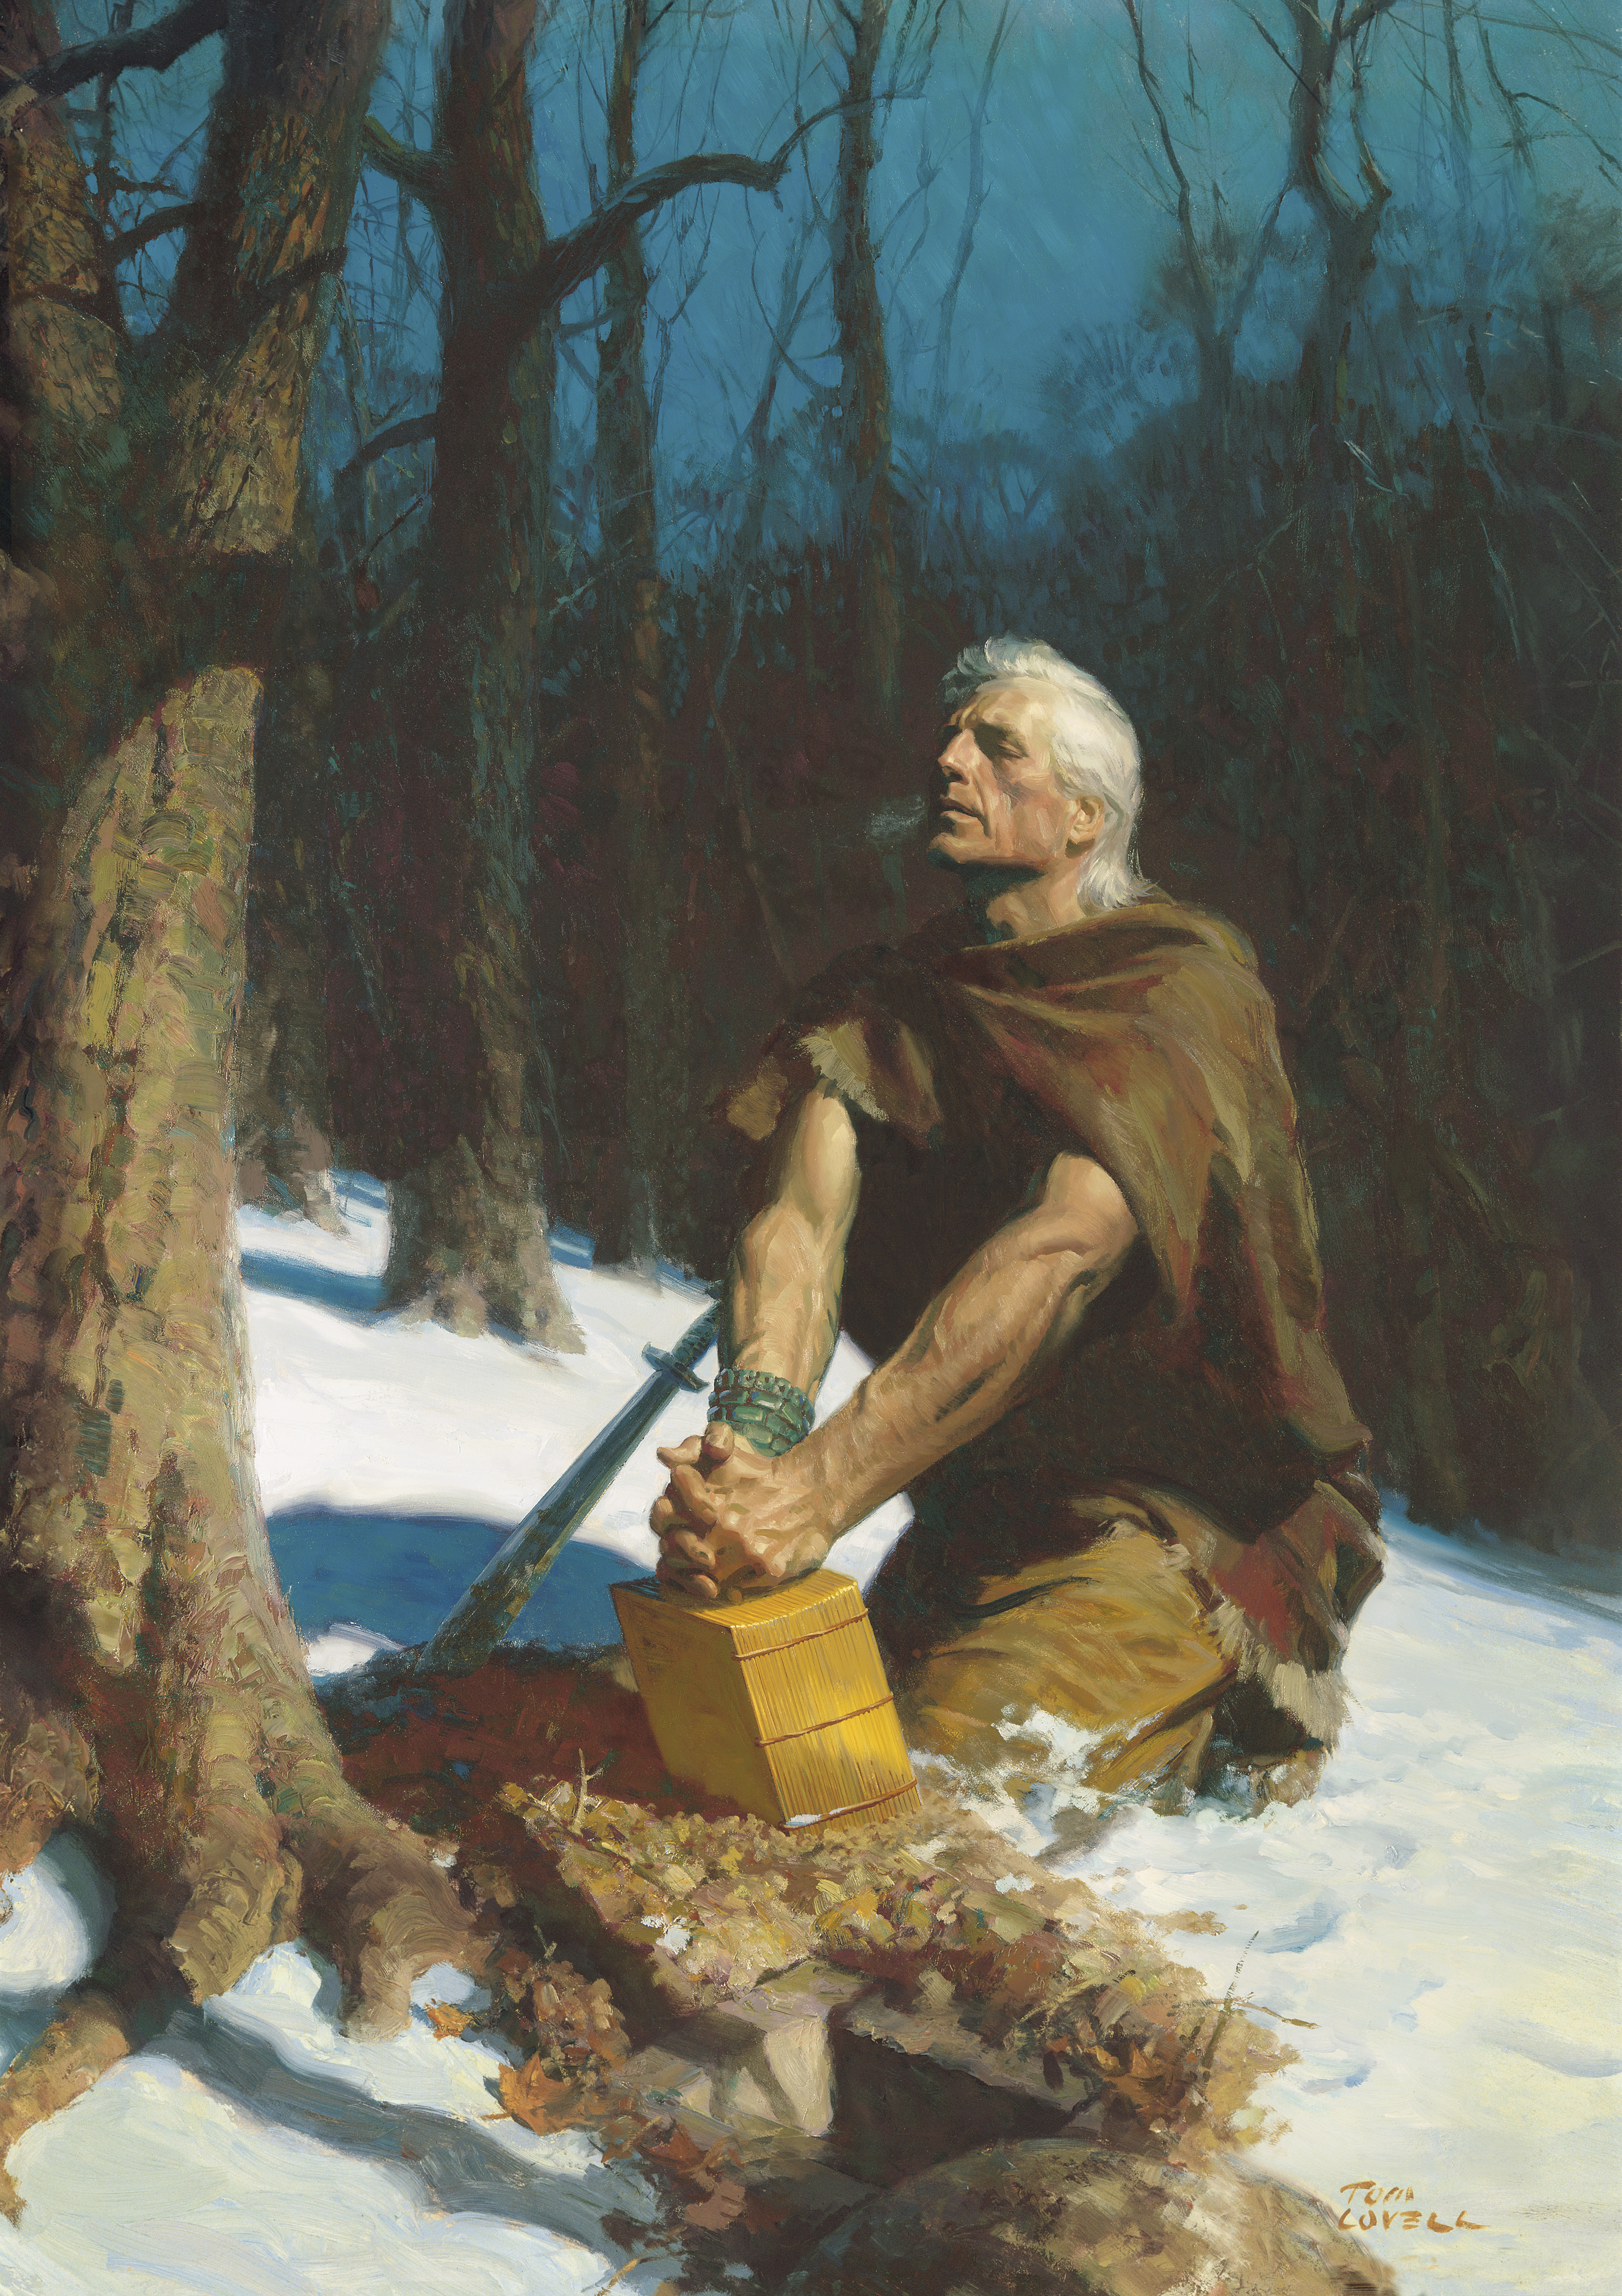 Moroni Hides the Plates in the Hill Cumorah (Moroni Burying the Plates), by Tom Lovell (62462); GAK 320; GAB 86; Primary manual 3-35; Primary manual 4-02; Mormon 6:6; 8:1, 3–4; Moroni 10:1–5